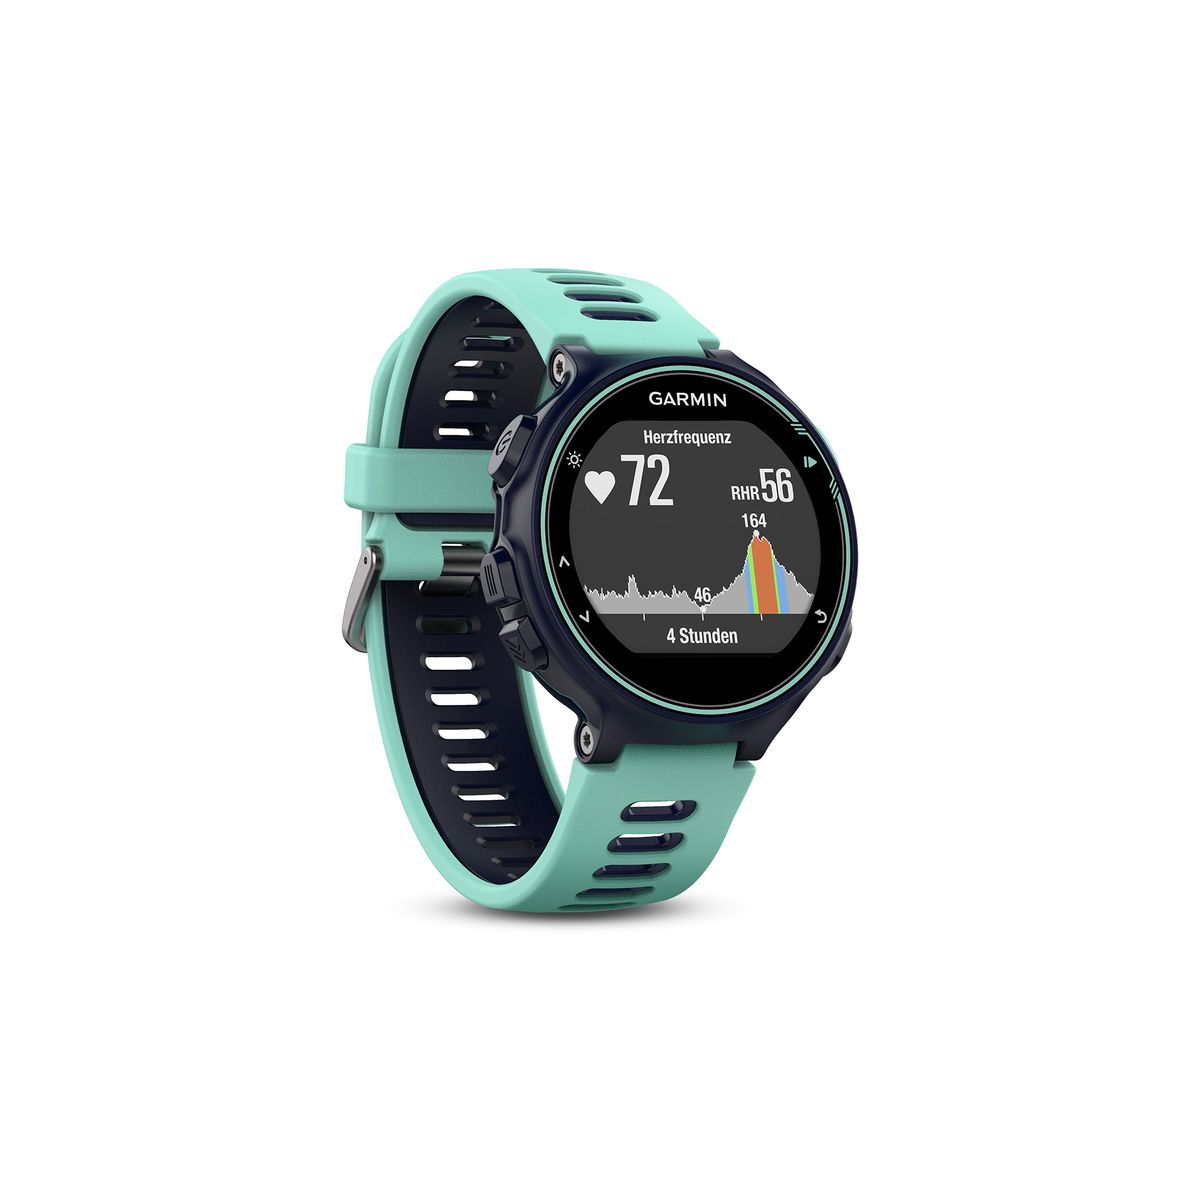 Buy Garmin Forerunner 735xt Gps Running Watch Rose Bikes